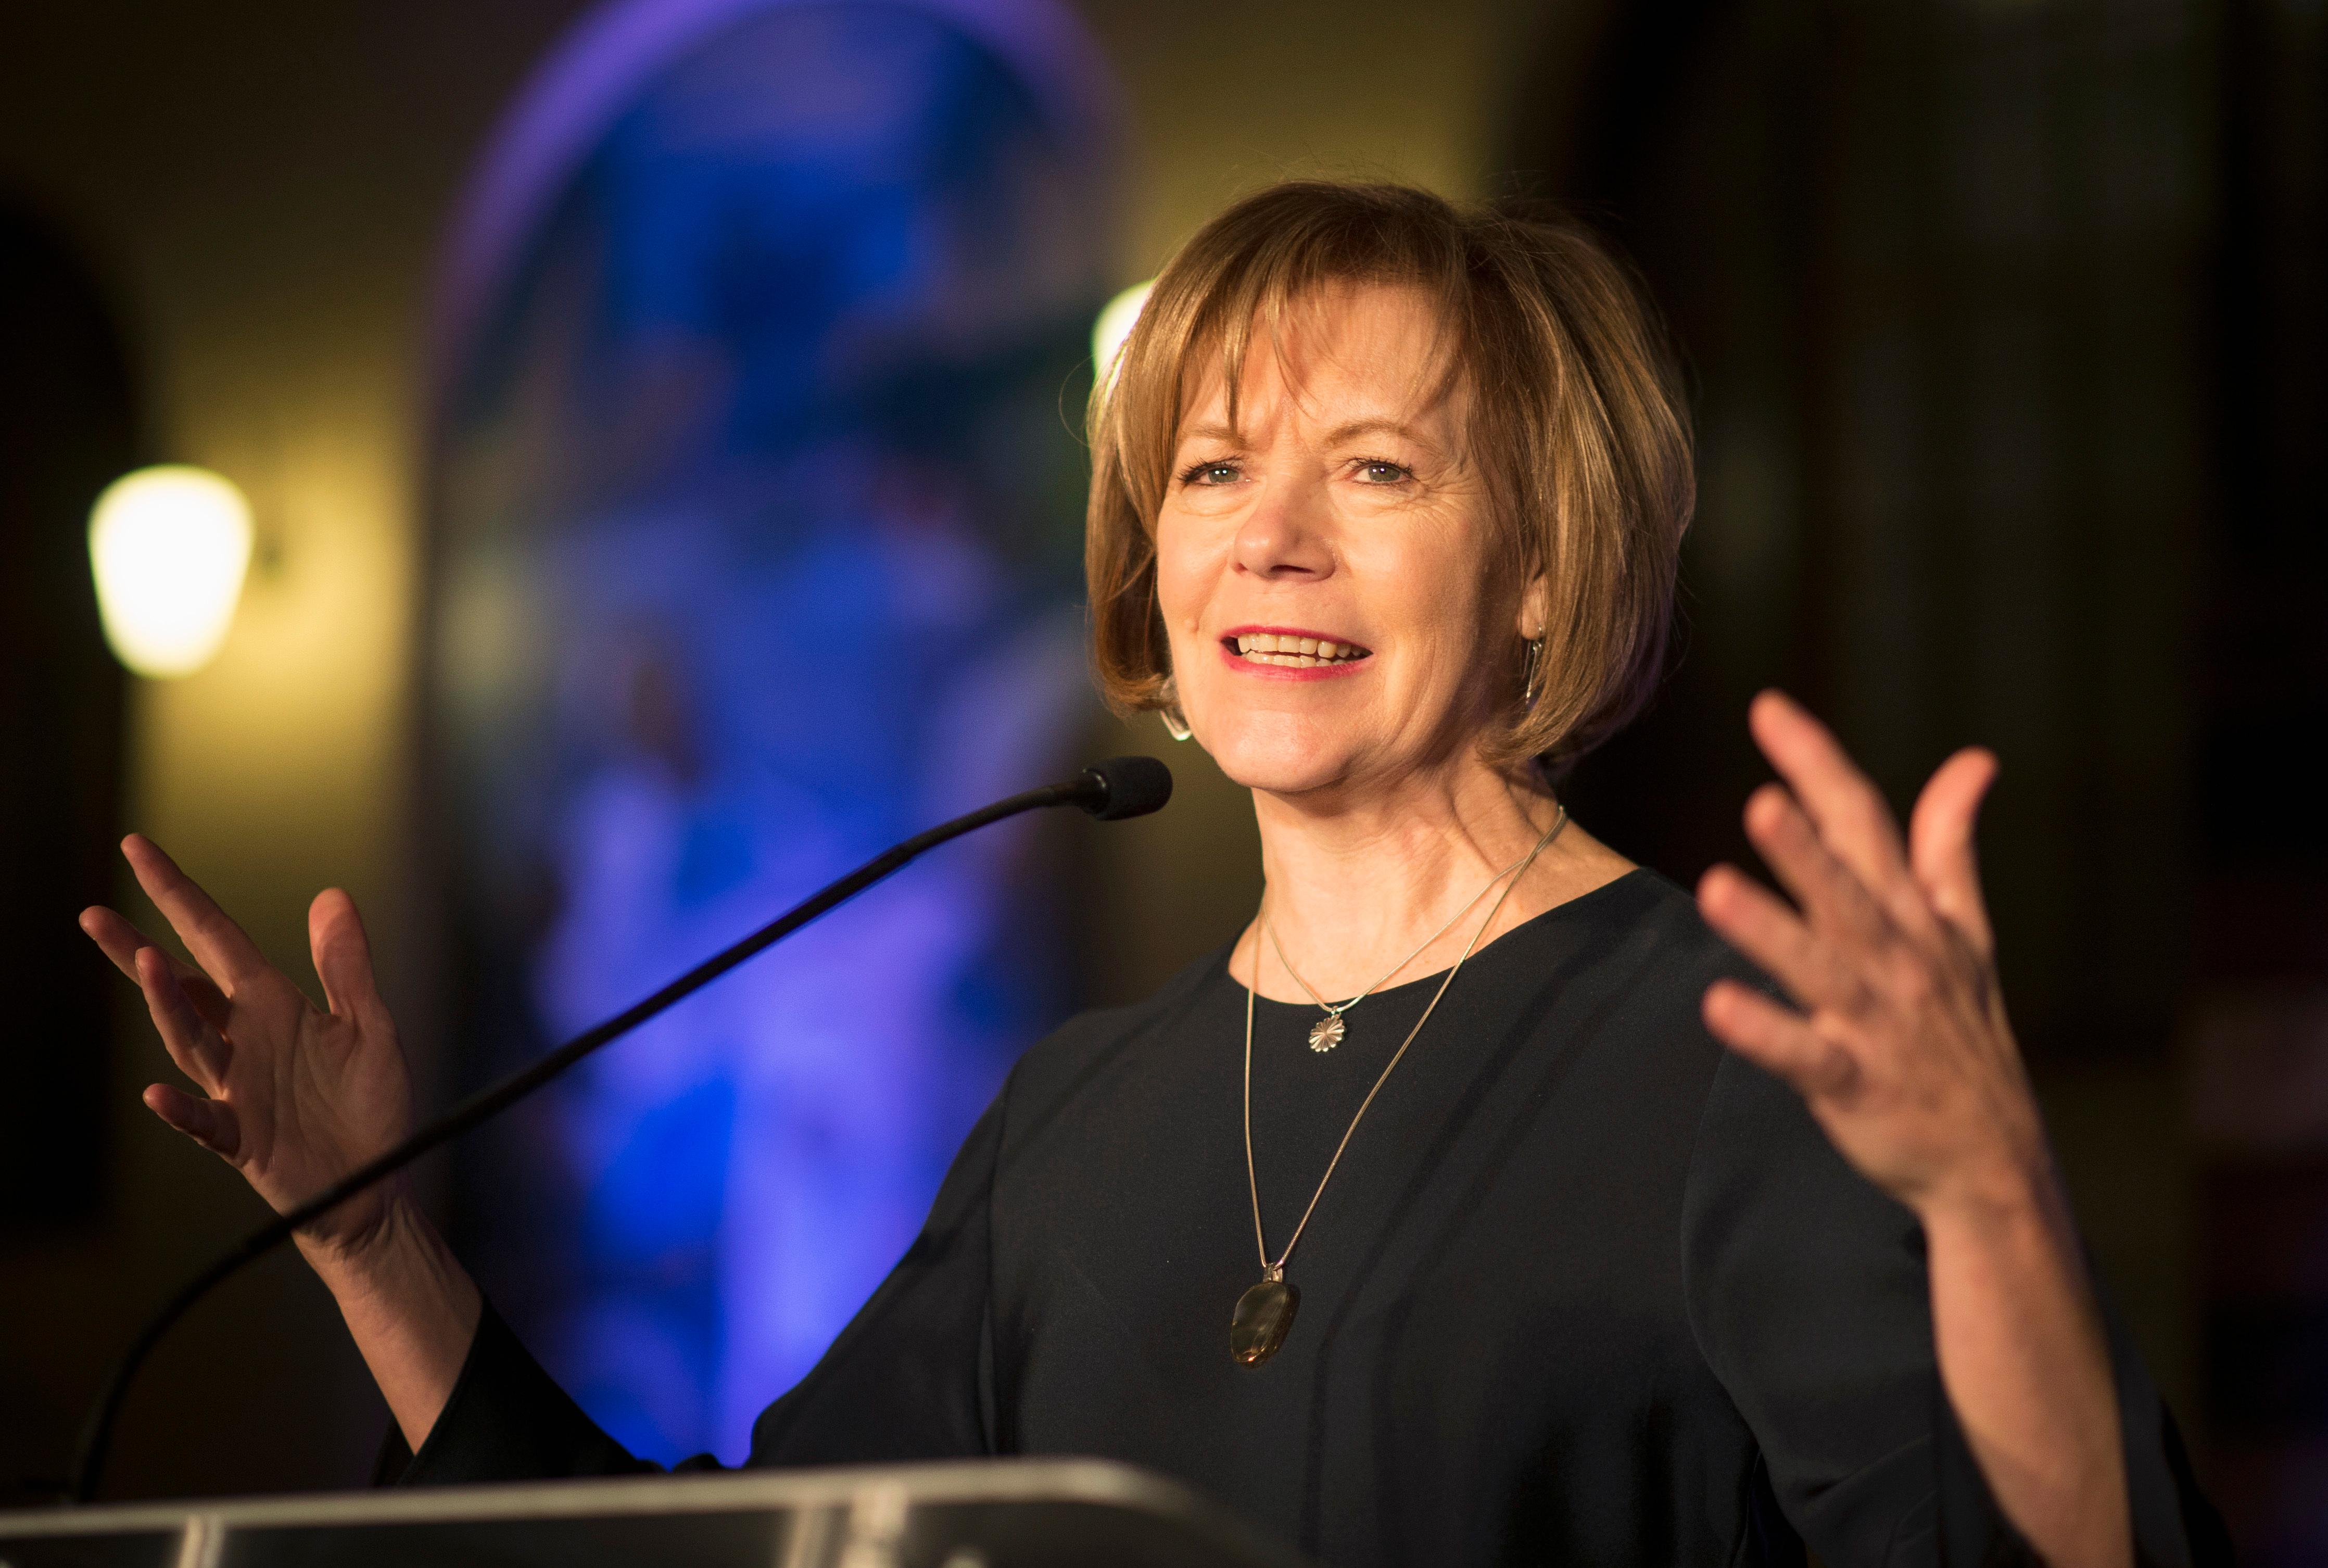 FILE - In this Jan. 10, 2015 file photo, Minnesota Democratic Lt. Gov. Tina Smith speaks to attendees at the North Star Ball in St. Paul, Minn. Minnesota Gov. Mark Dayton is set to name his choice to replace Al Franken in the U.S. Senate, with the top contender seen as Lt. Gov. Smith. Dayton was expected to make the appointment Wednesday, Dec. 13, 2017, nearly a week after Franken announced his plan to resign over allegations of sexual misconduct. (Aaron Lavinsky/Star Tribune via AP, File)